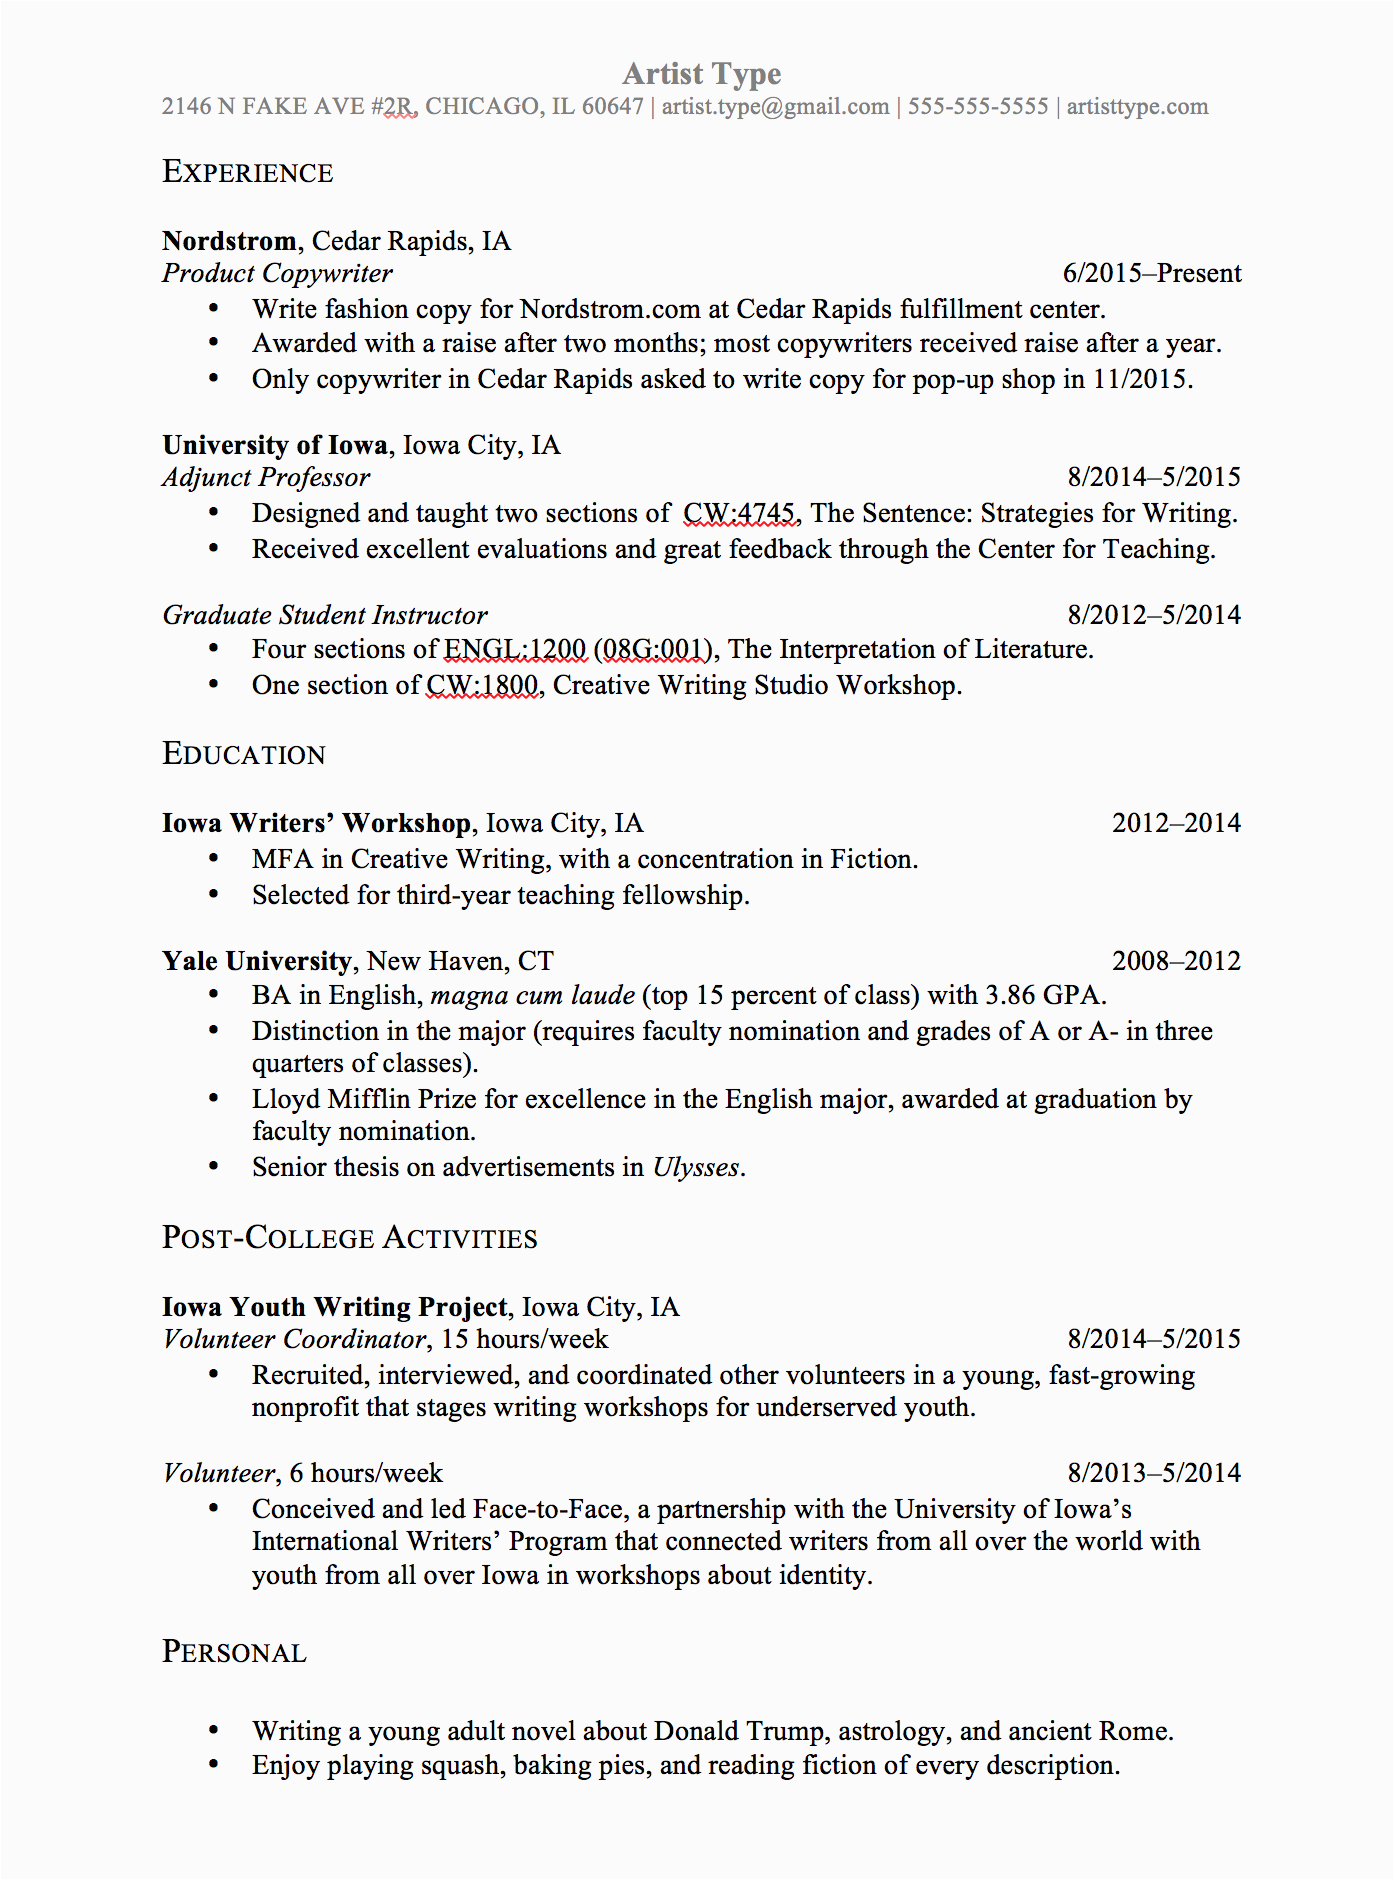 Sample Law School Resume for Admissions ⭐️résumé Template for Law School Admissions